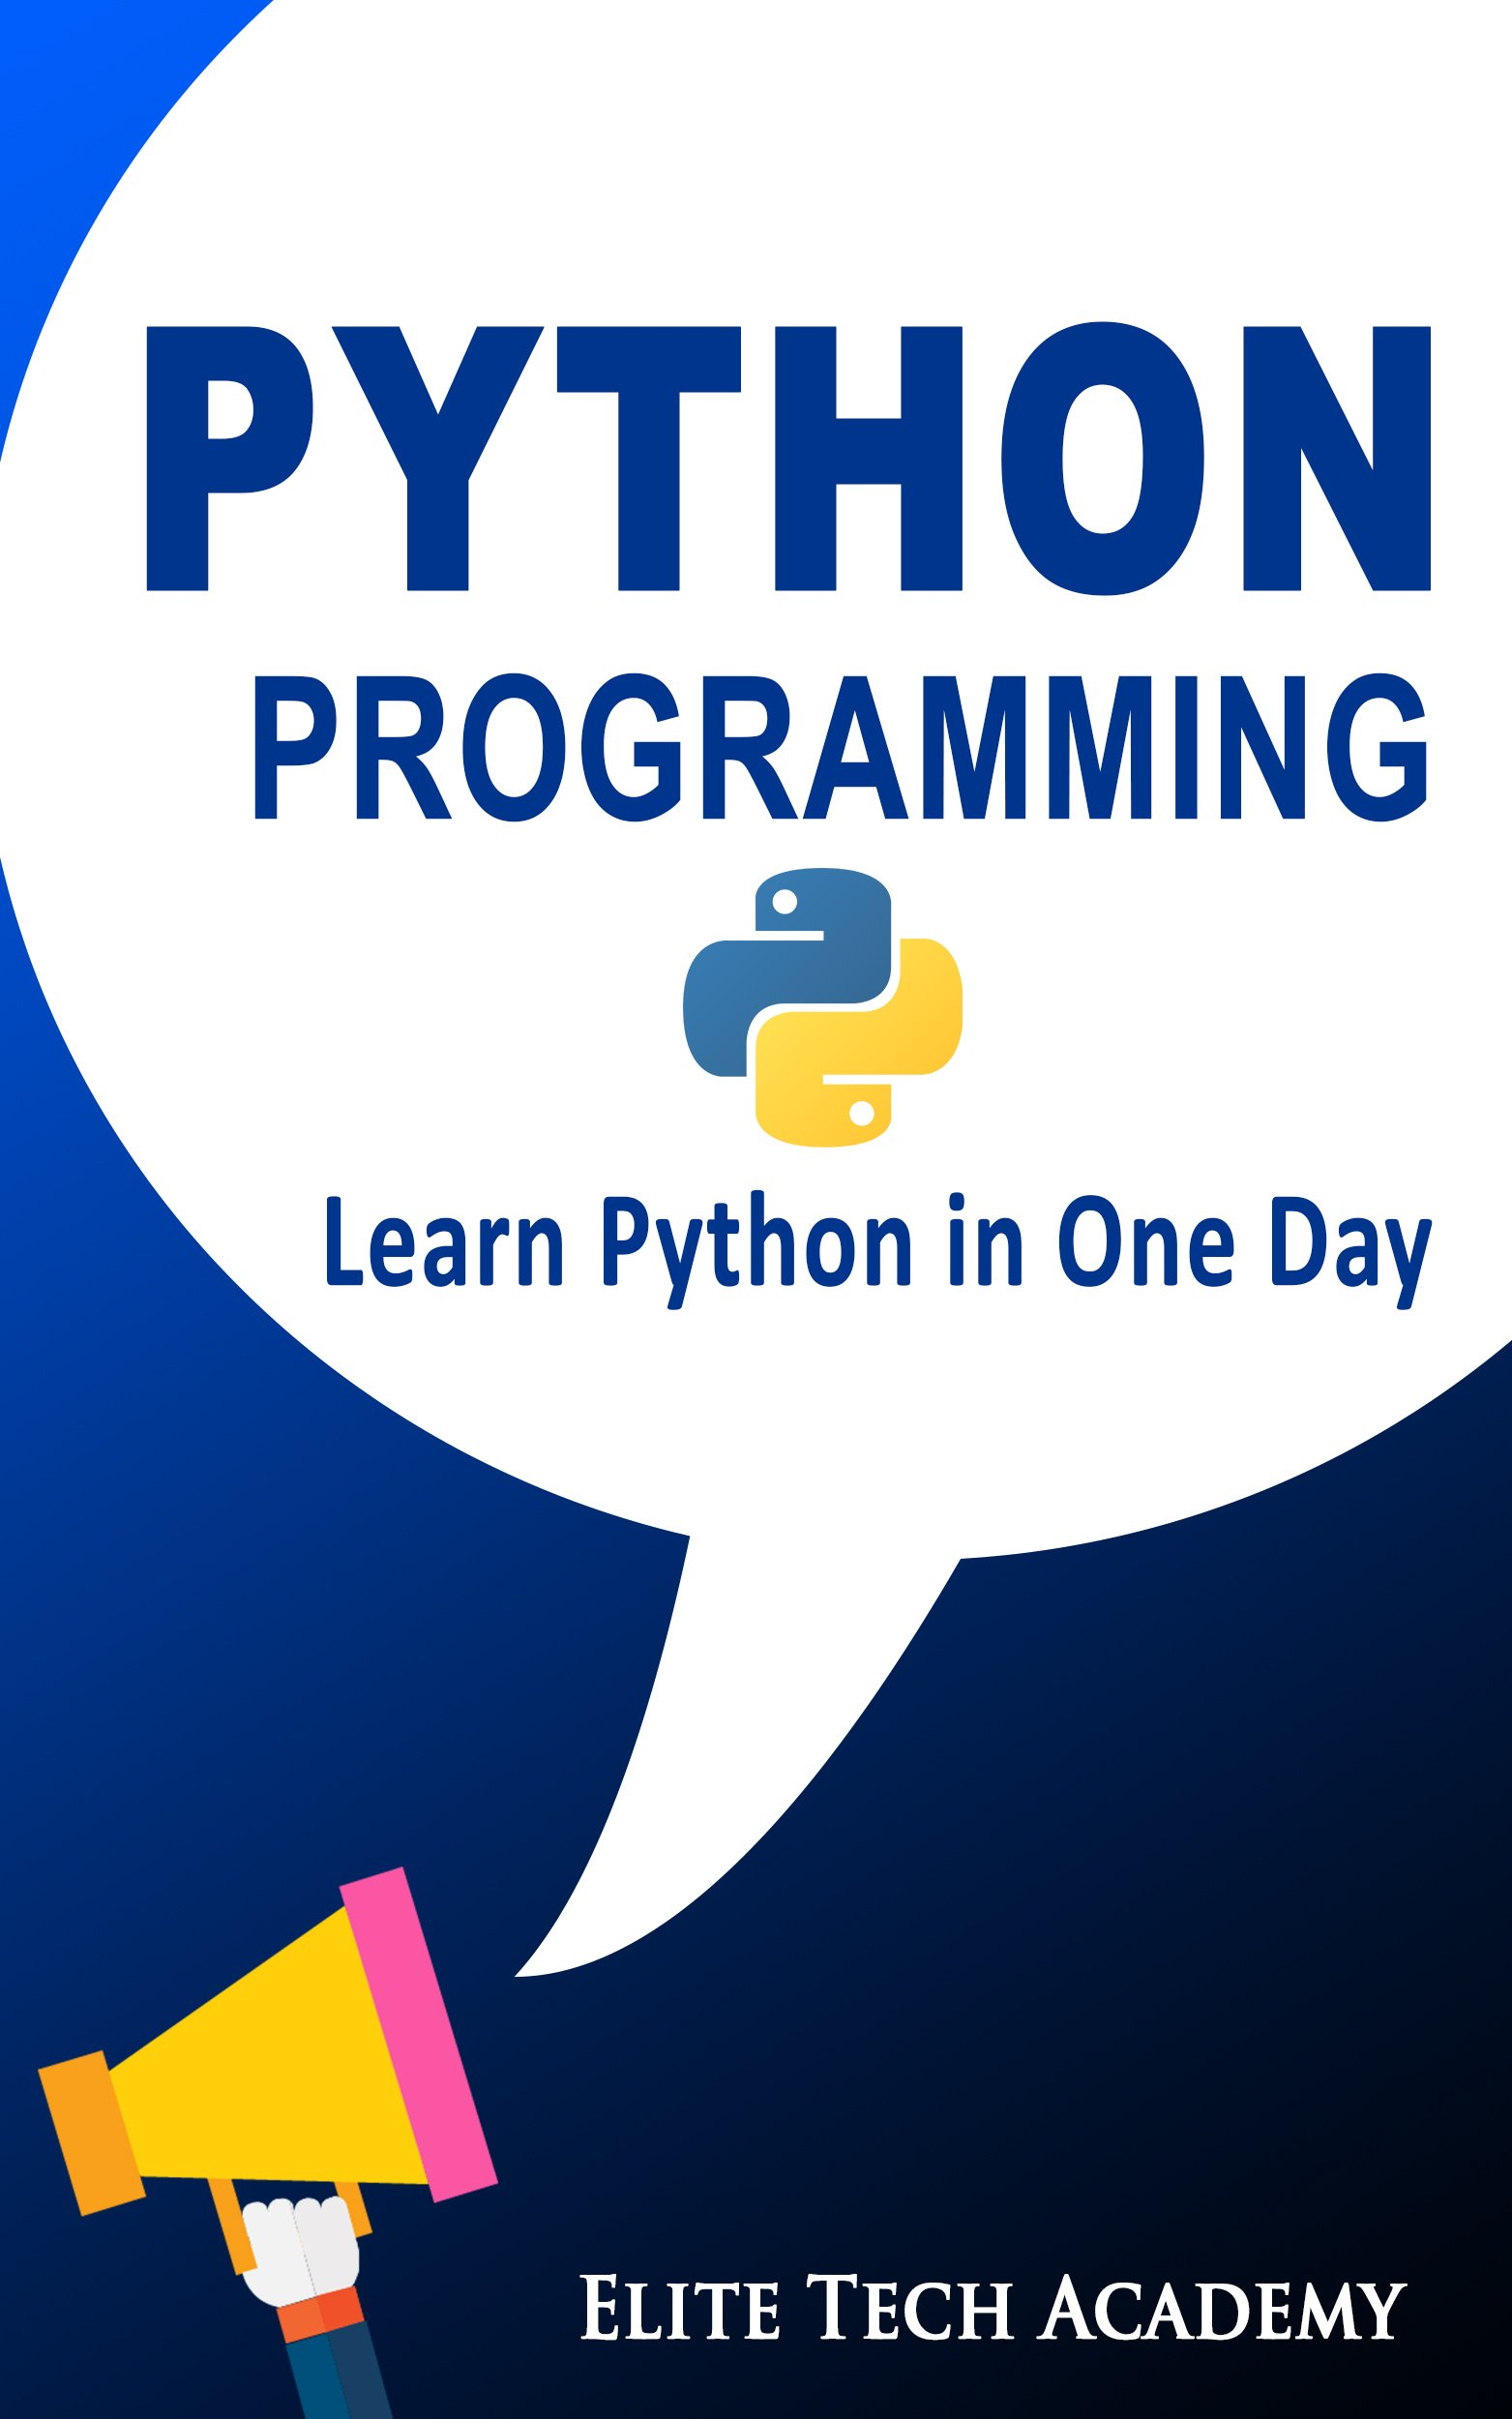 Image OfPython Programming For Beginners: Learn Python In One Day (Python, Python For Dummies, Python Crash Course) (English Edition)